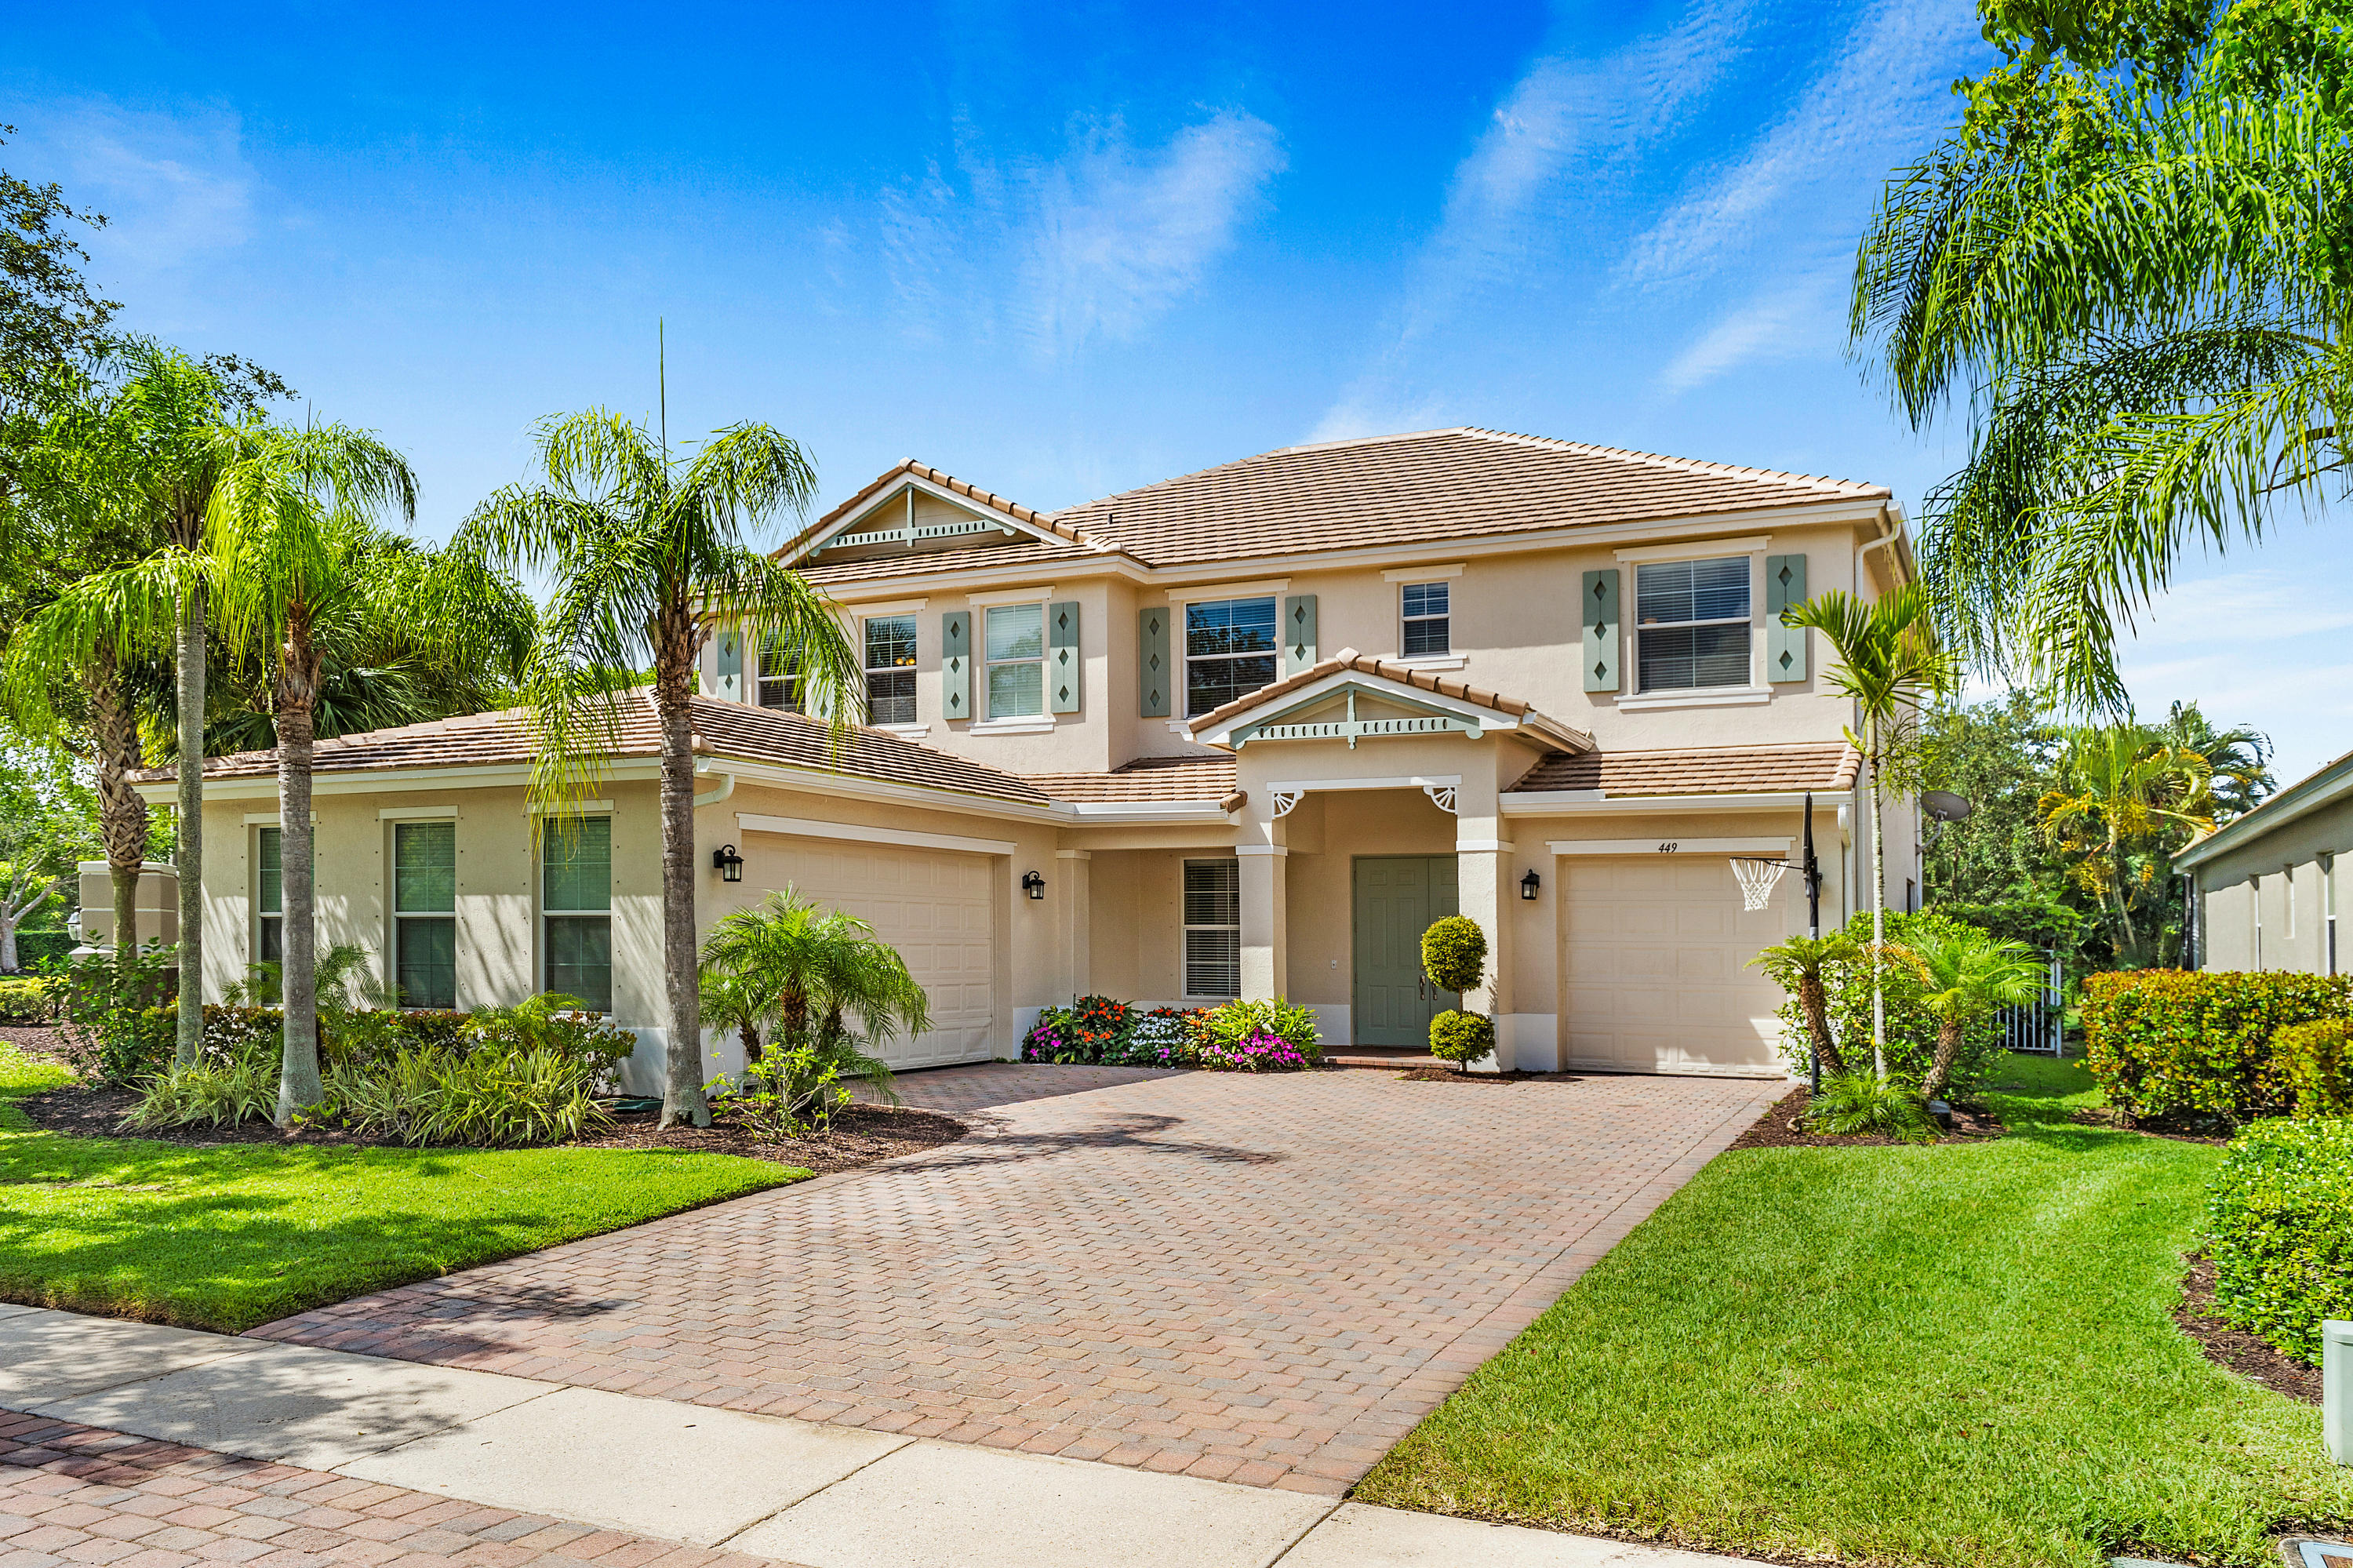 449 Saint Emma Drive, Royal Palm Beach, Florida